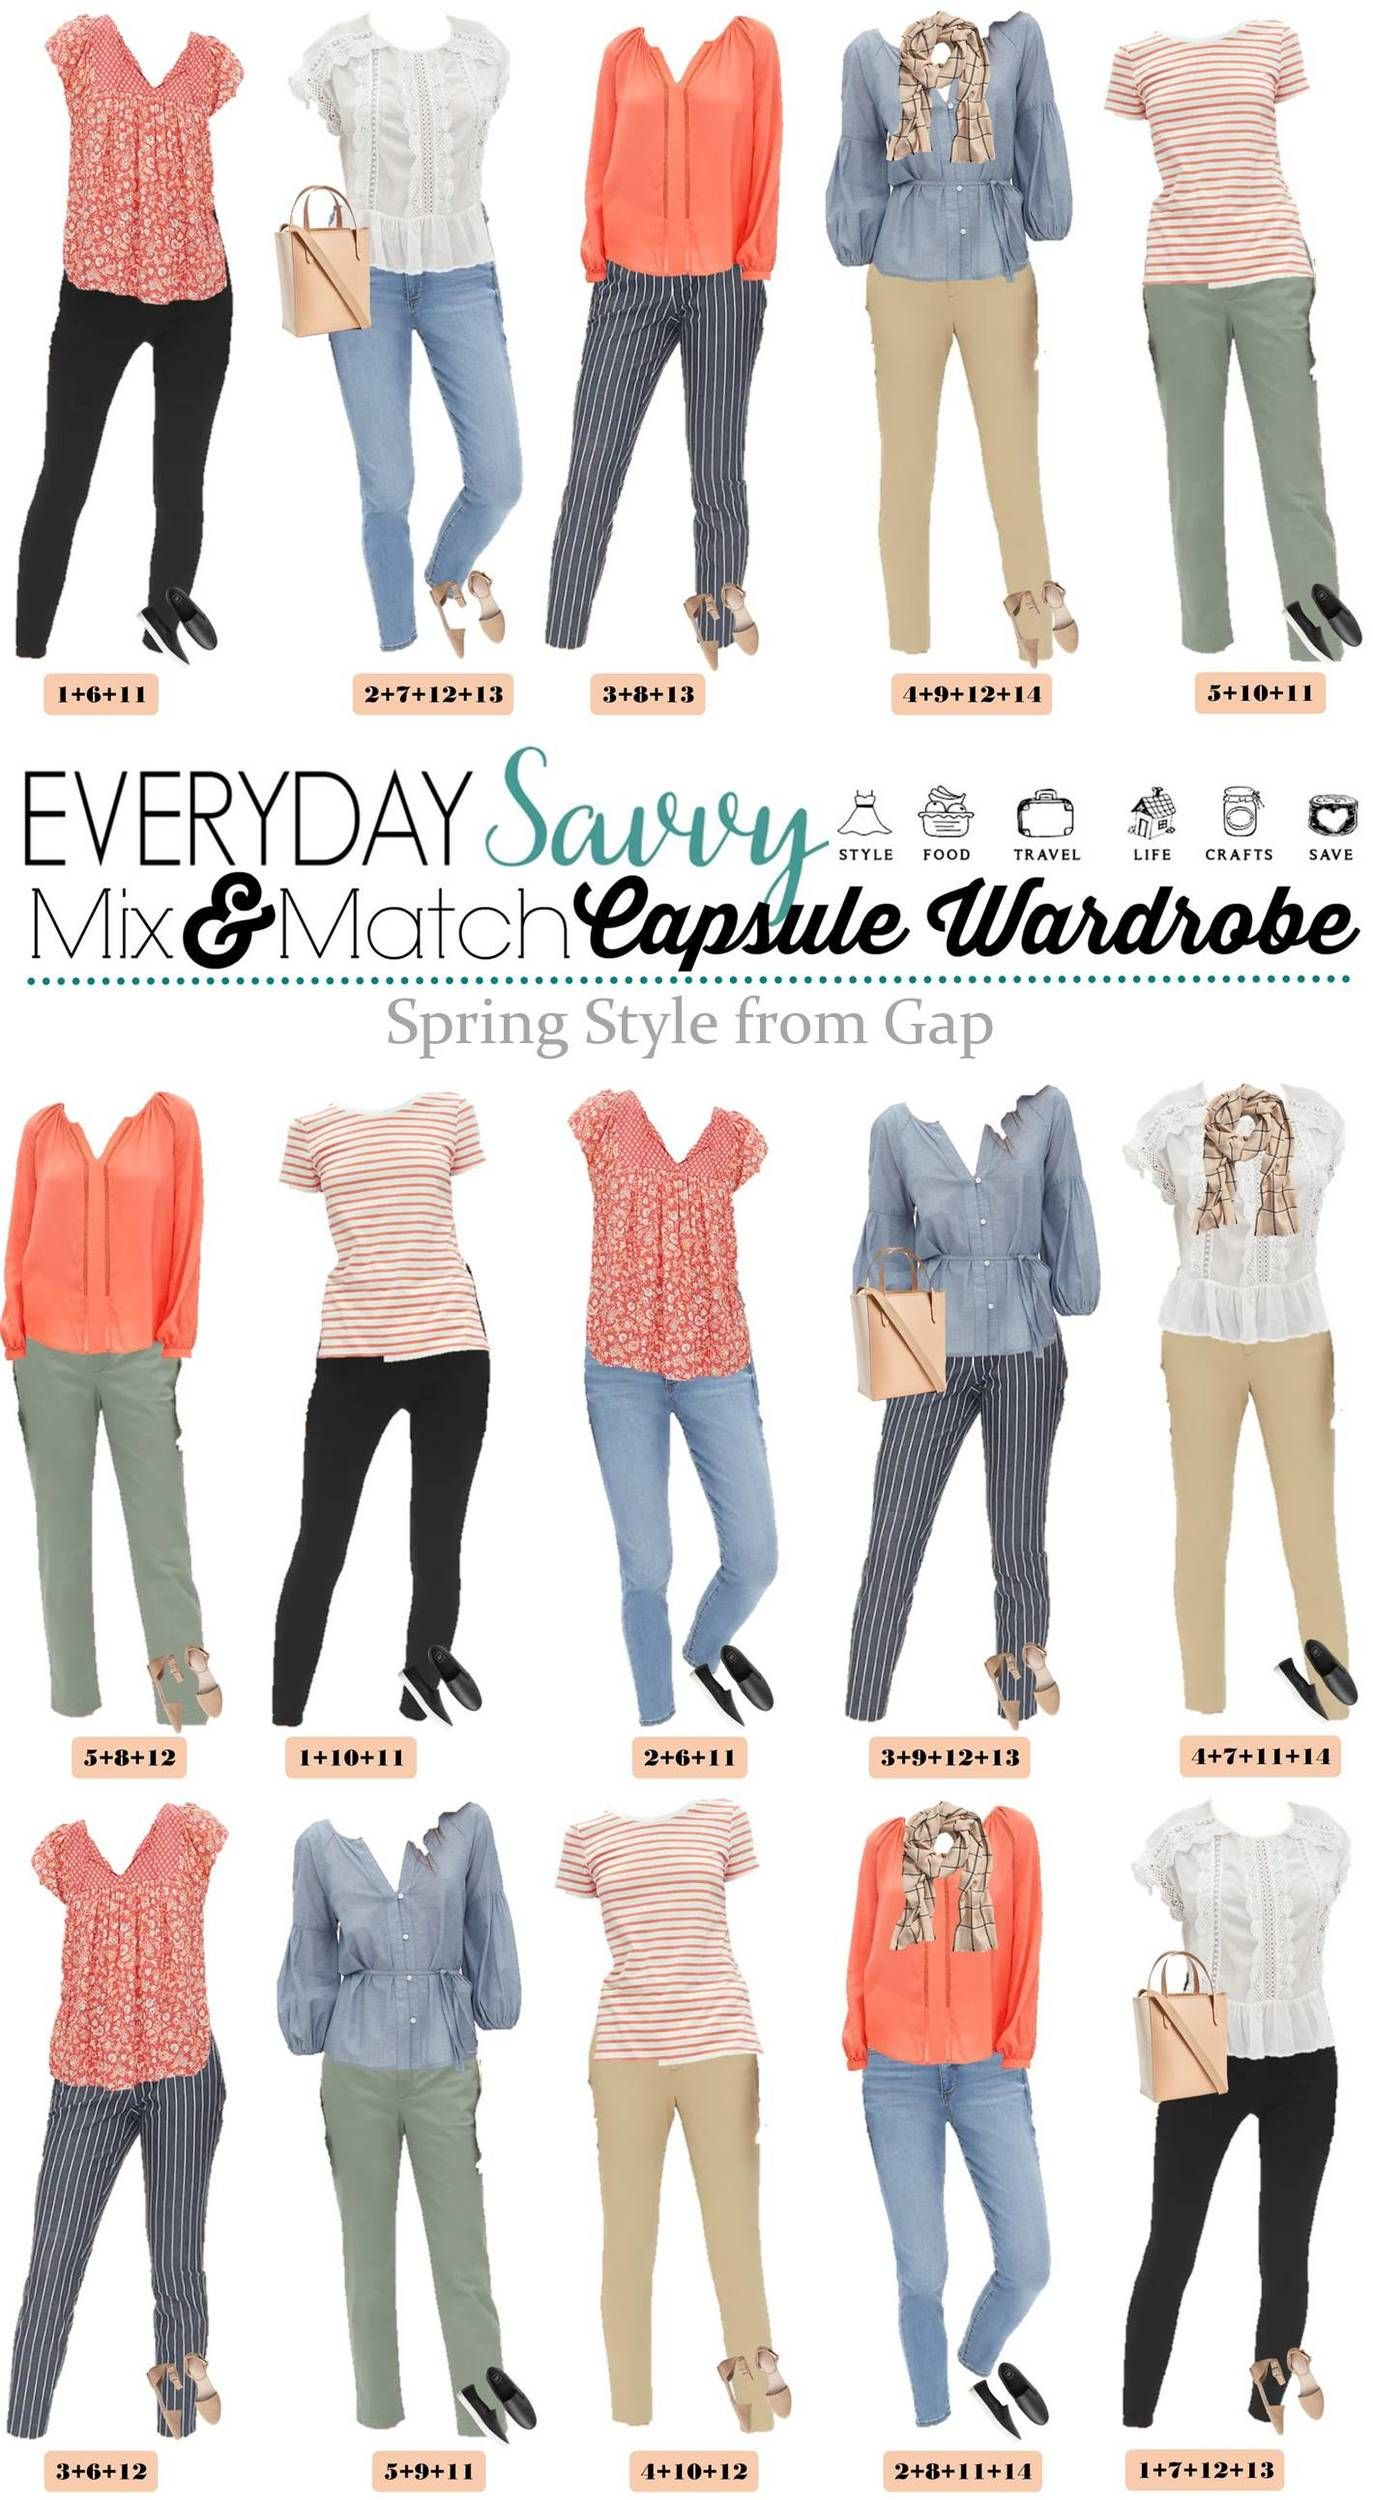 Cute Spring Outfits Capsule Wardrobe - Great for Everyday & Travel